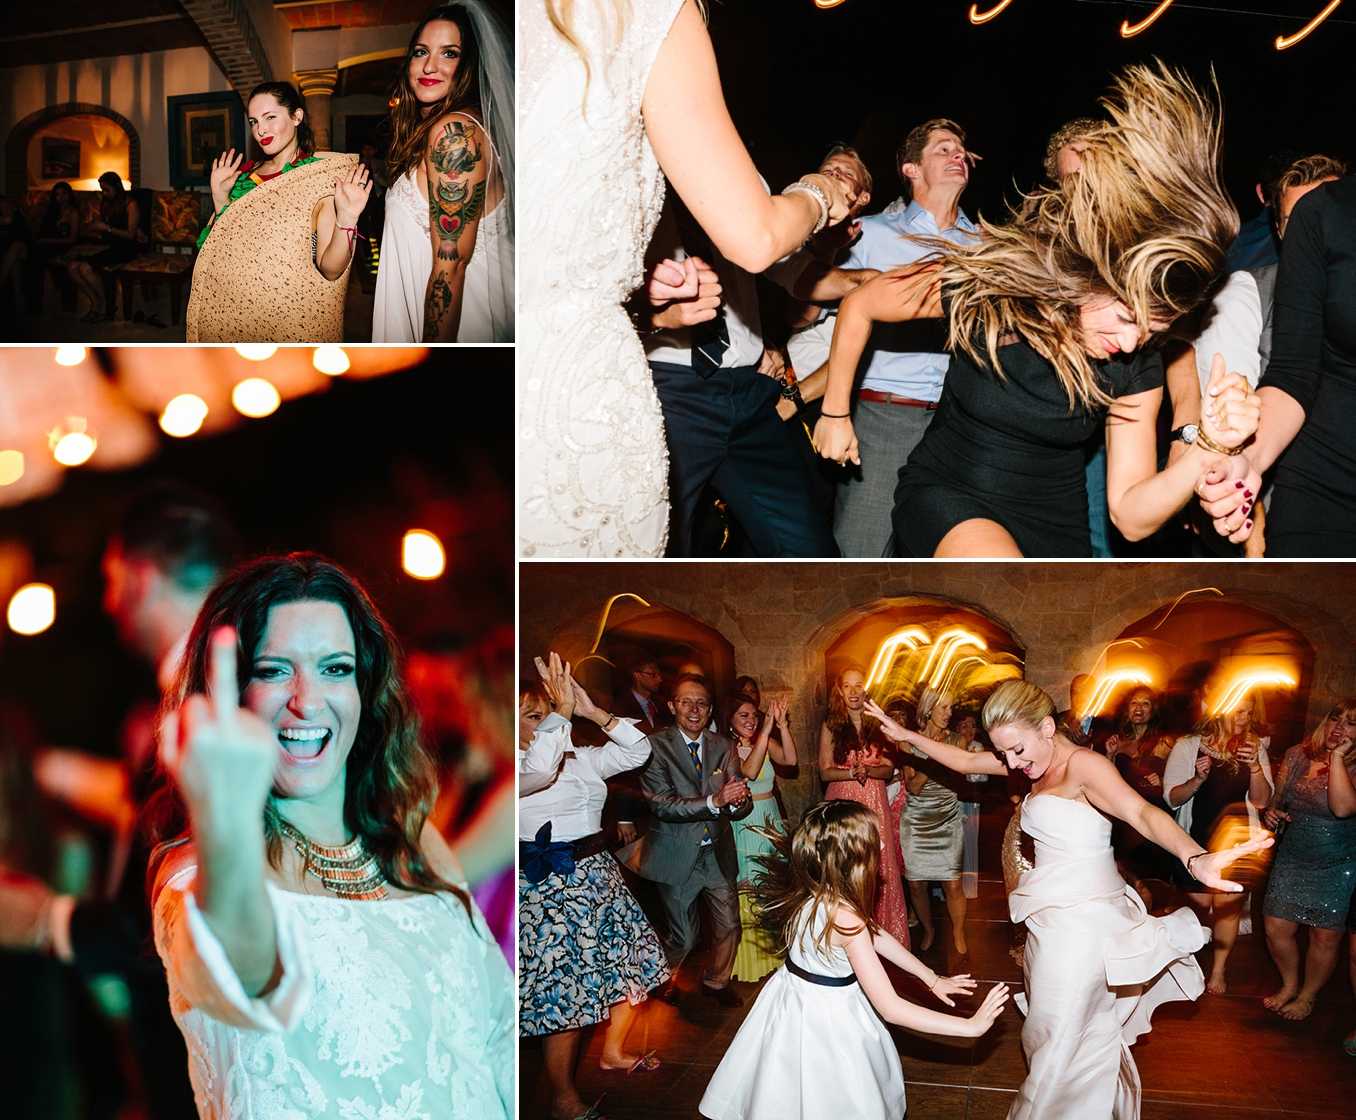 STUDIO 1208 contest for free video and photo at your wedding in 2016